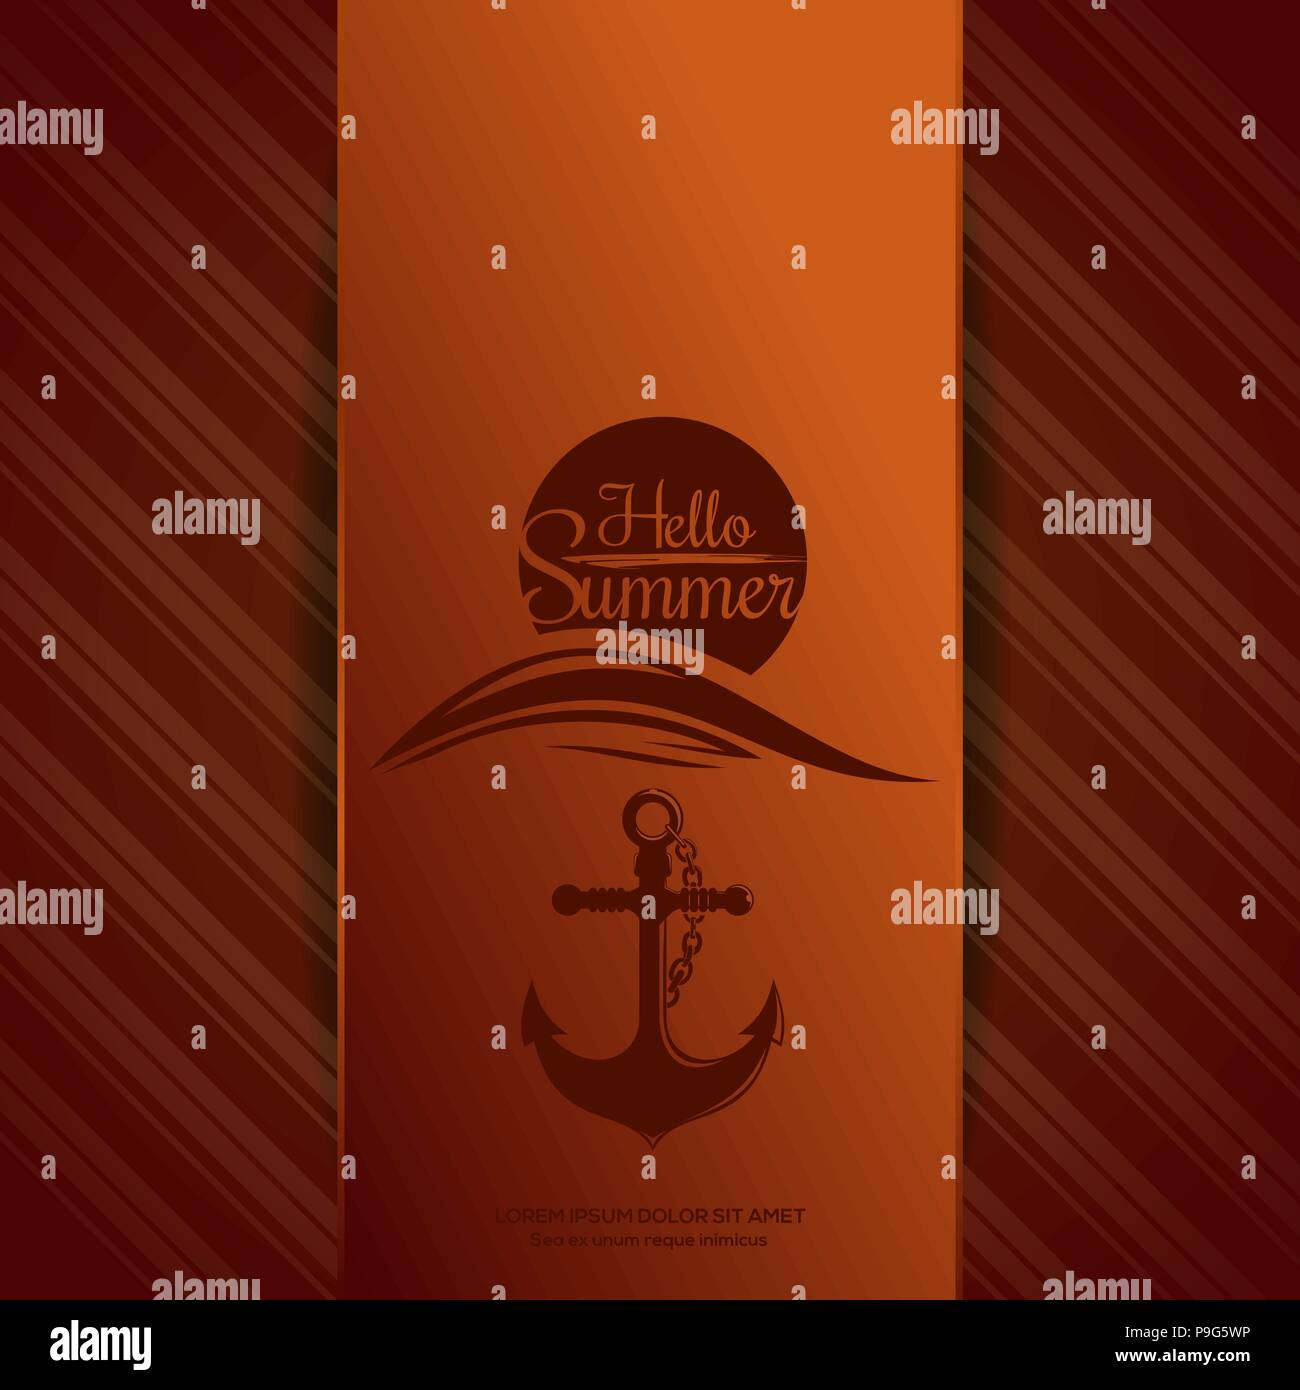 Hello Summer logo. Sun over sea waves and the ships anchor. Summer icons on orange background. Vector illustration - Stock Vector